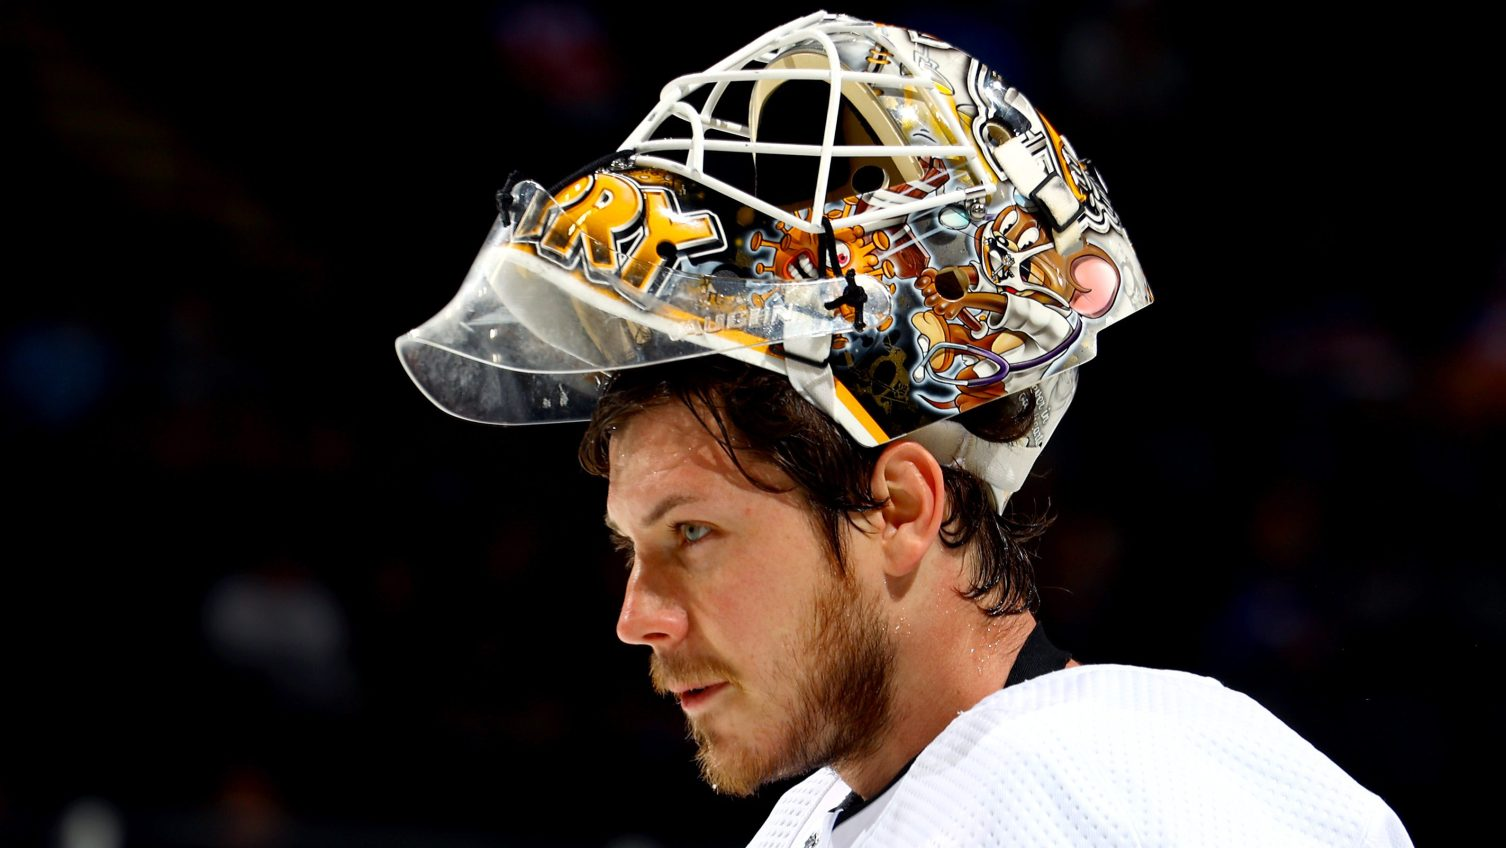 Penguins hope goalie coach change makes difference for Jarry, DeSmith